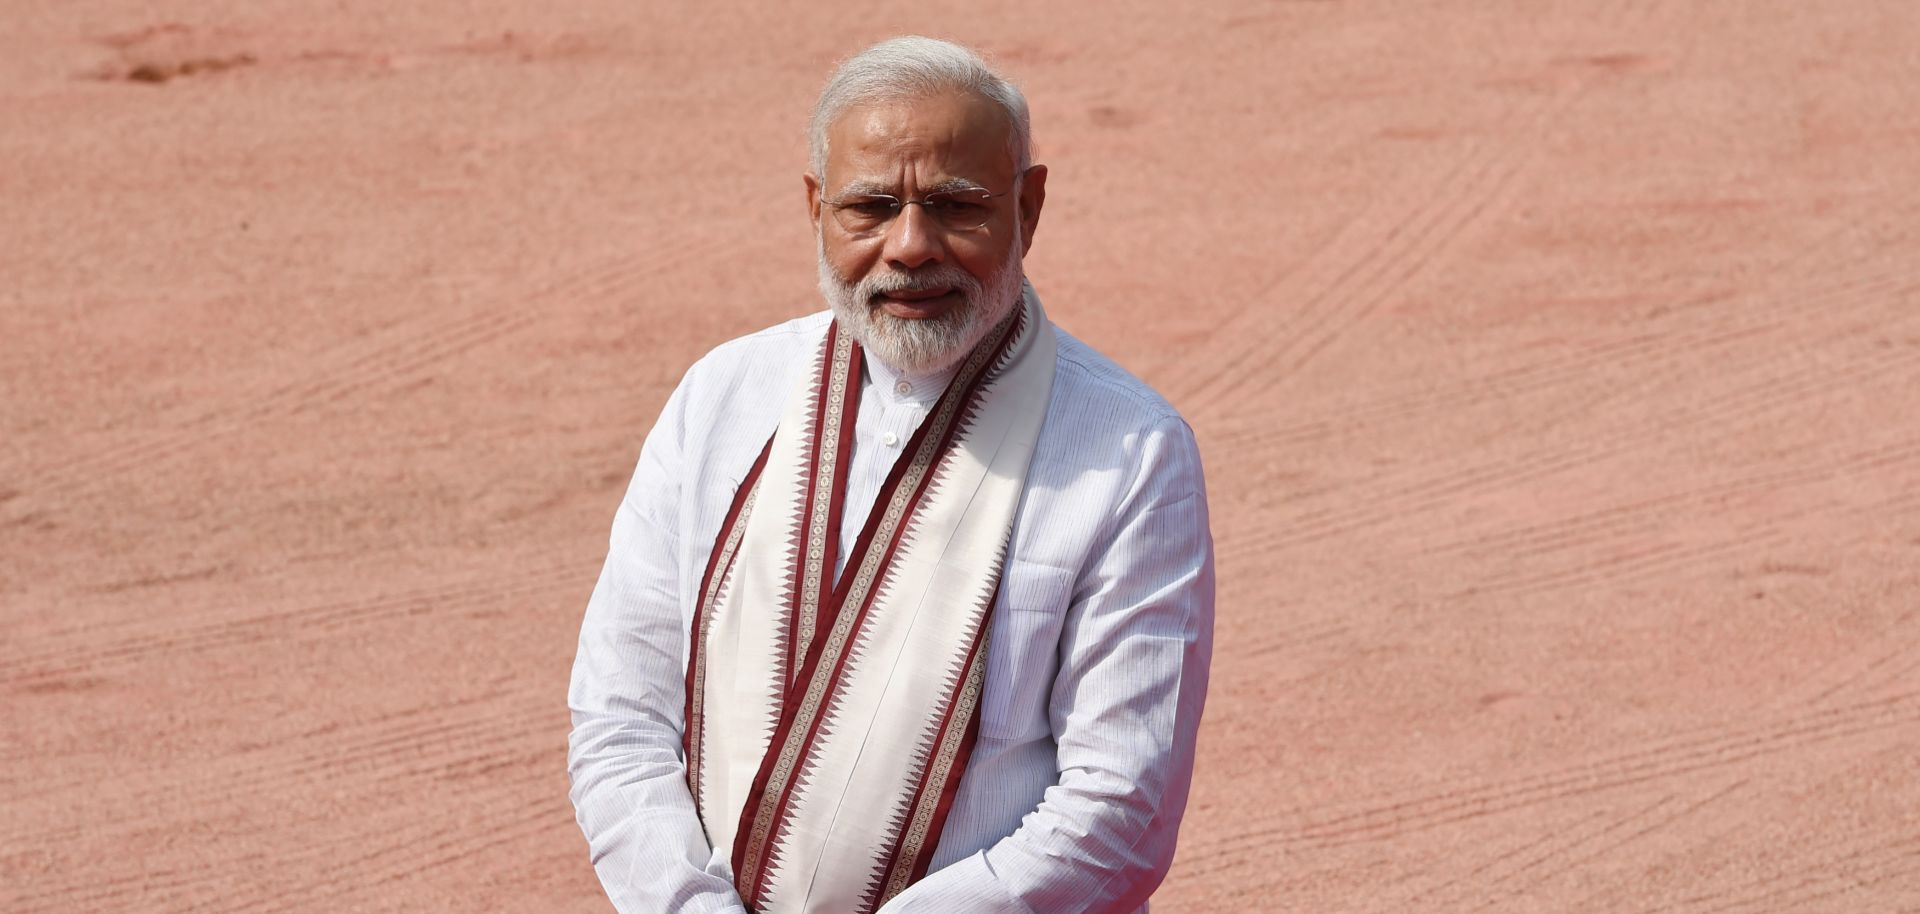 Indian Prime Minister Narendra Modi, looking quite content with himself